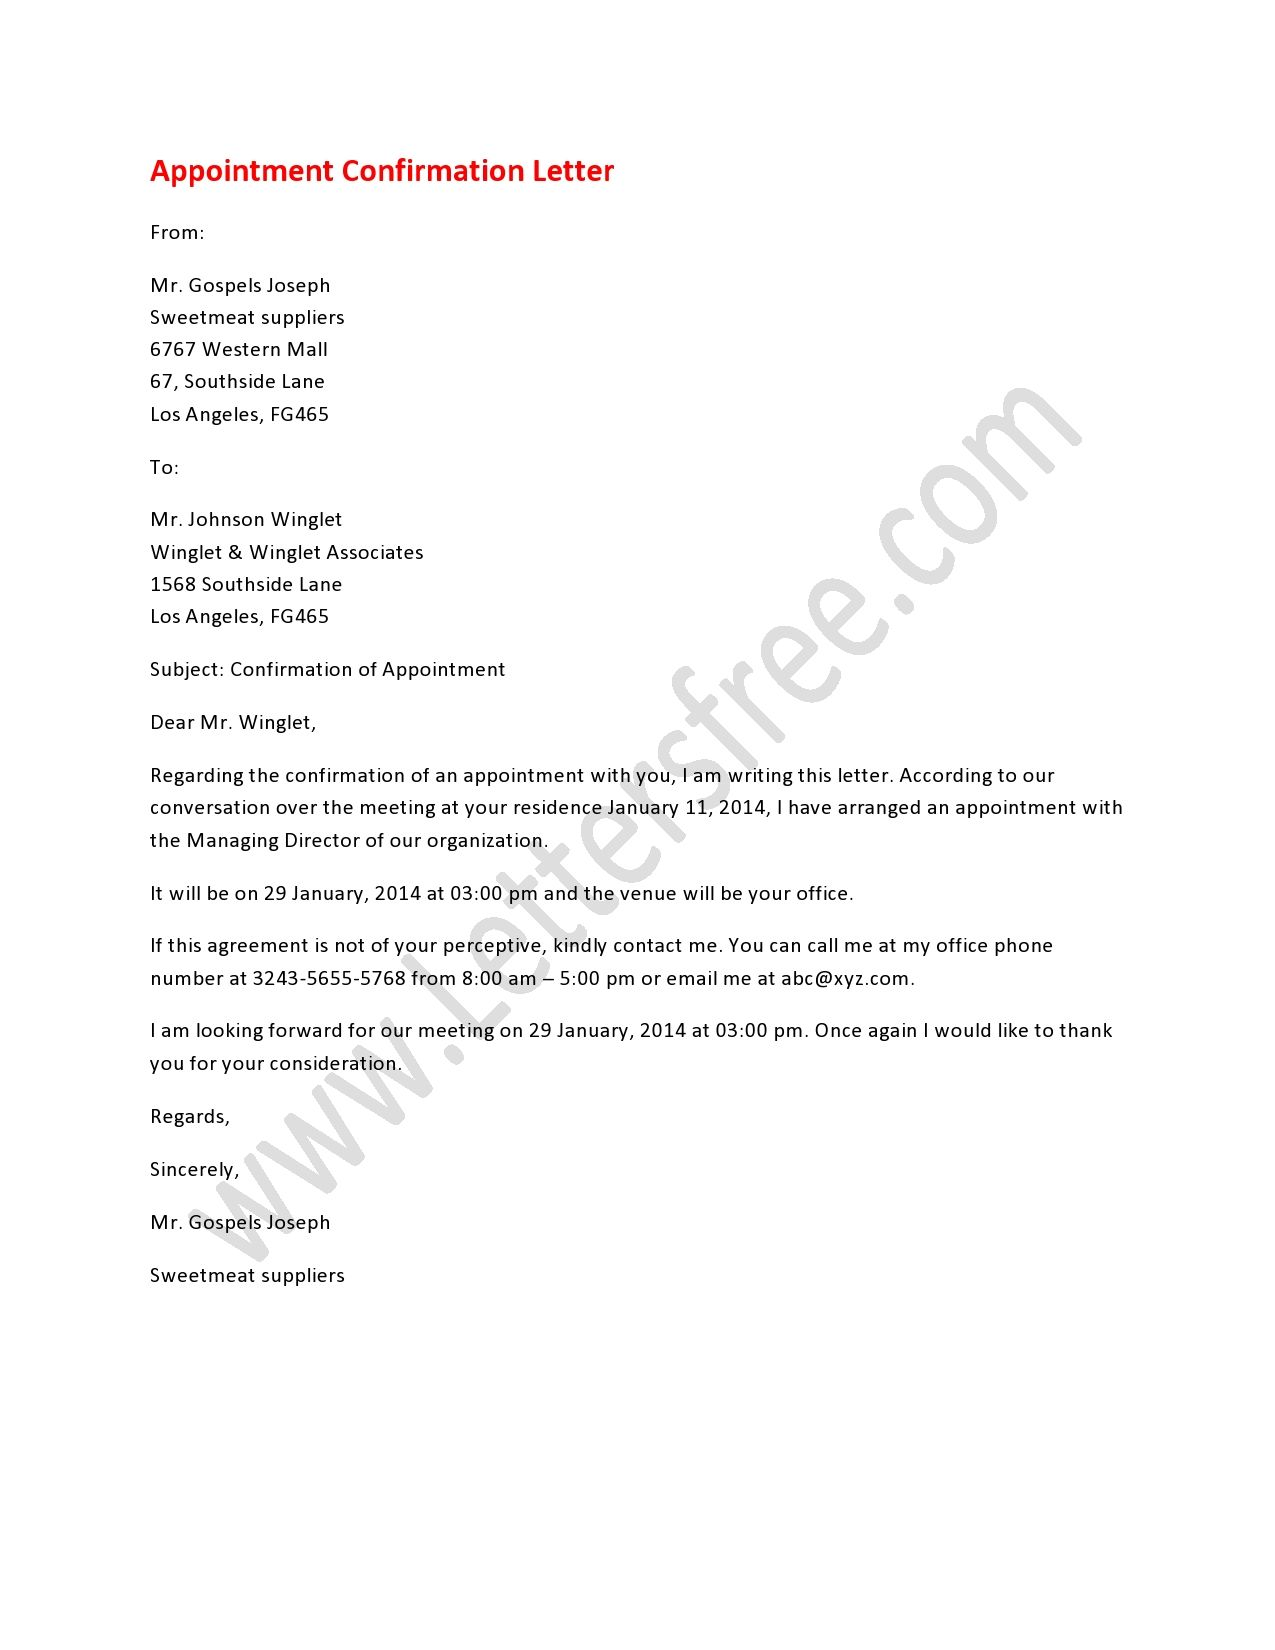 Appointment confirmation letter letter example appointments and appointment confirmation letter is a formal letter written for the confirmation of any business meeting or job interview spiritdancerdesigns Image collections